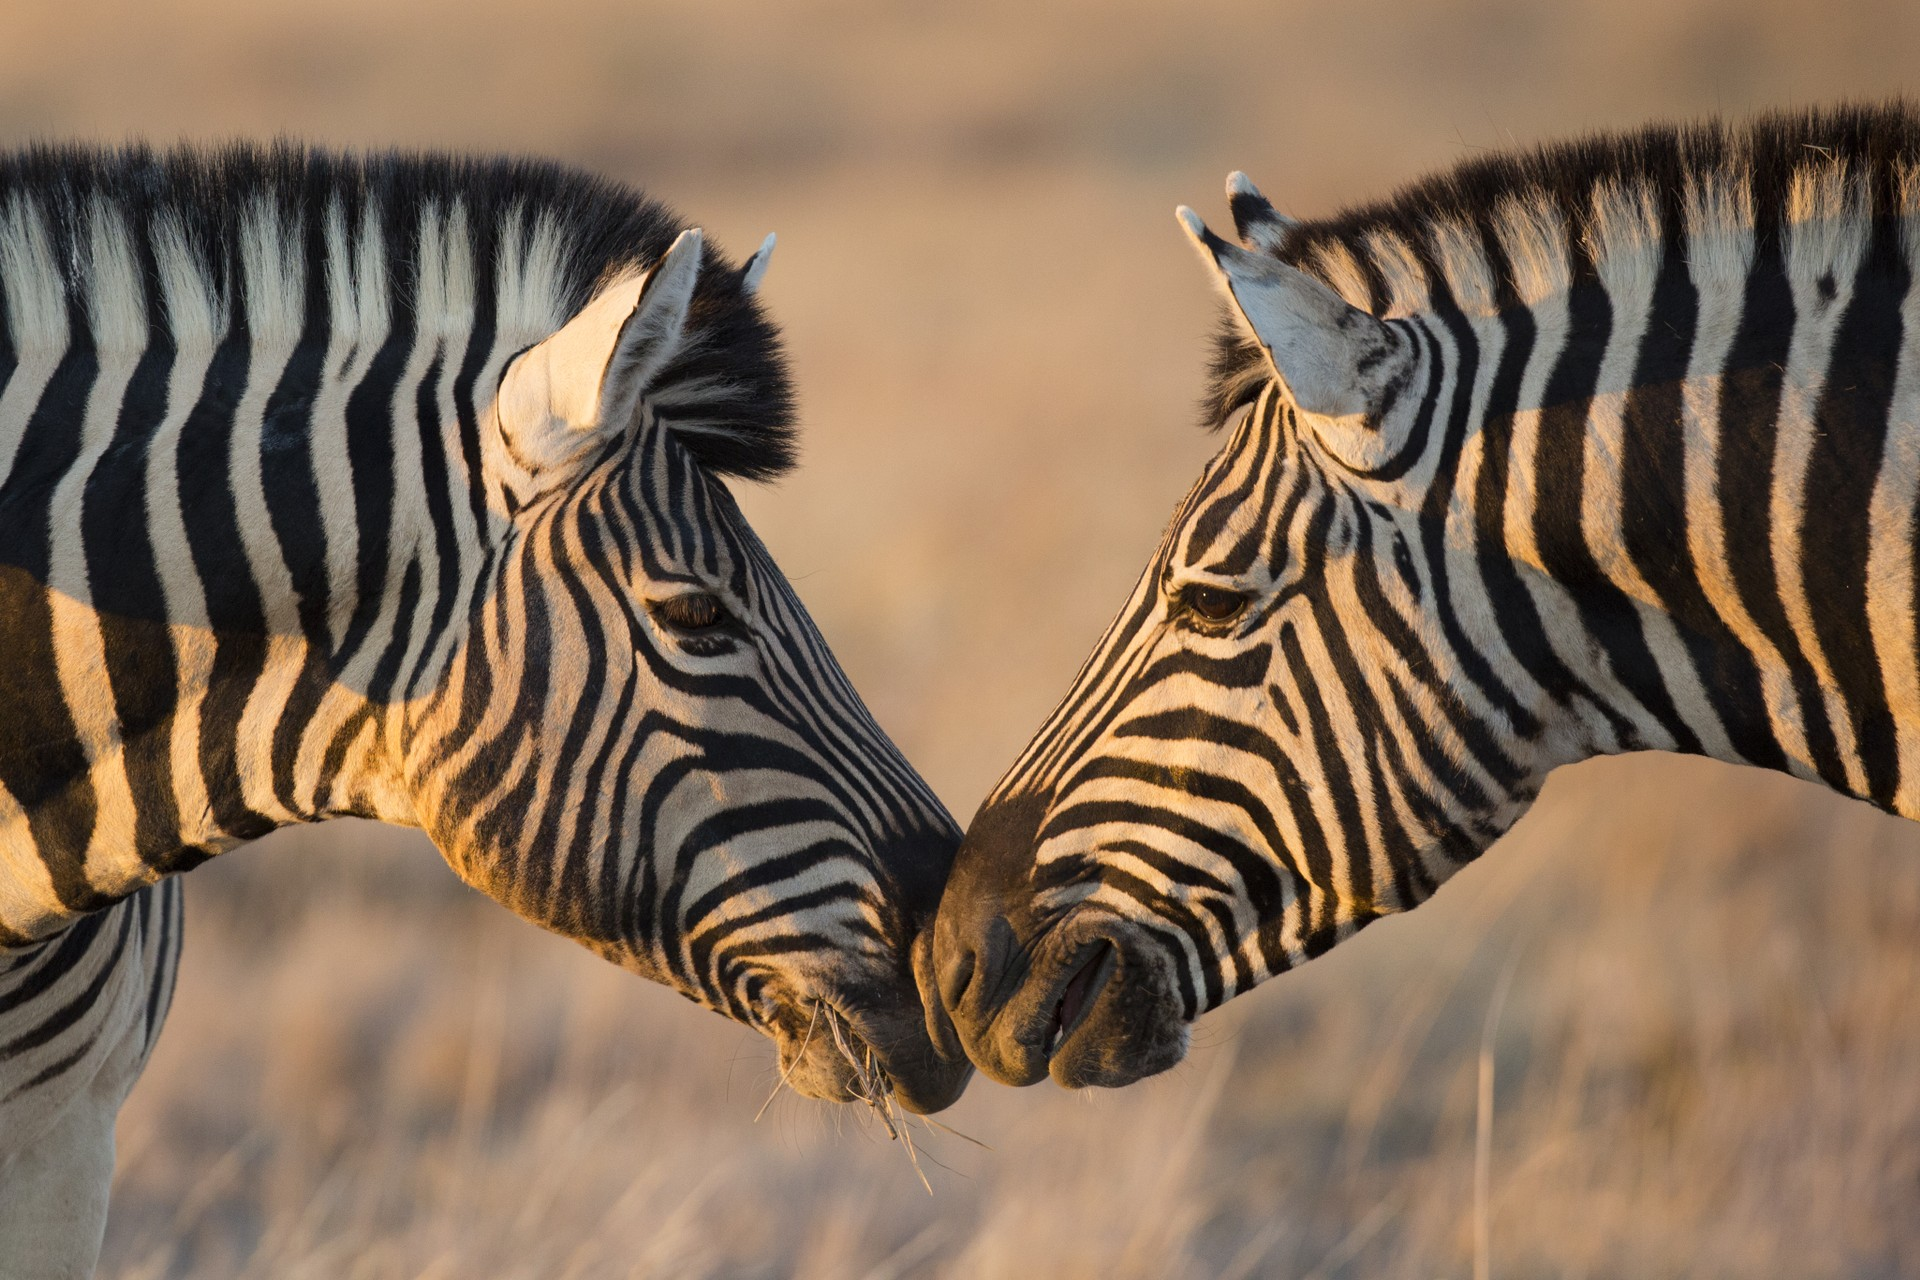 Zebras greeting each other in Namibia